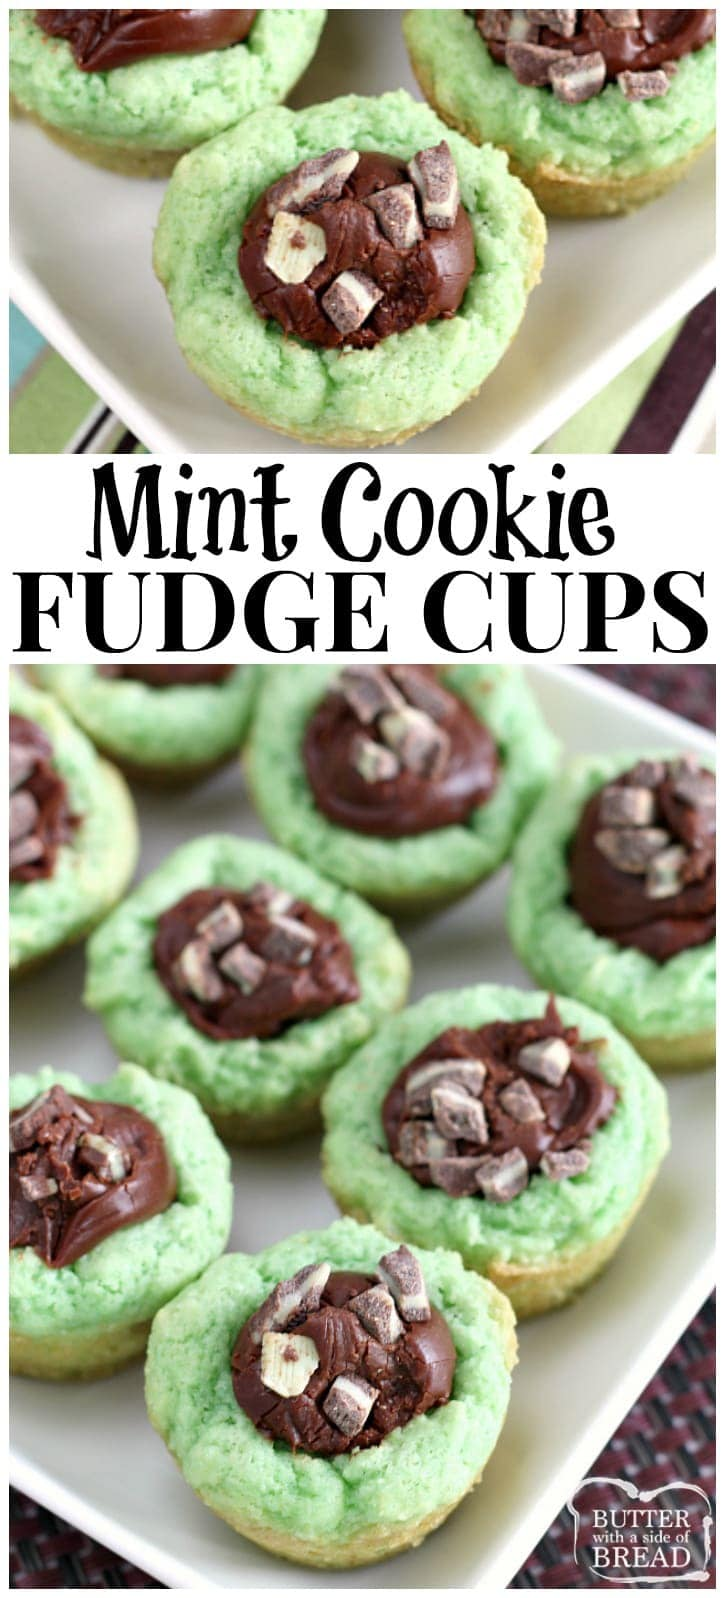 Mint Cookie Fudge Cups - Butter With a Side of Bread